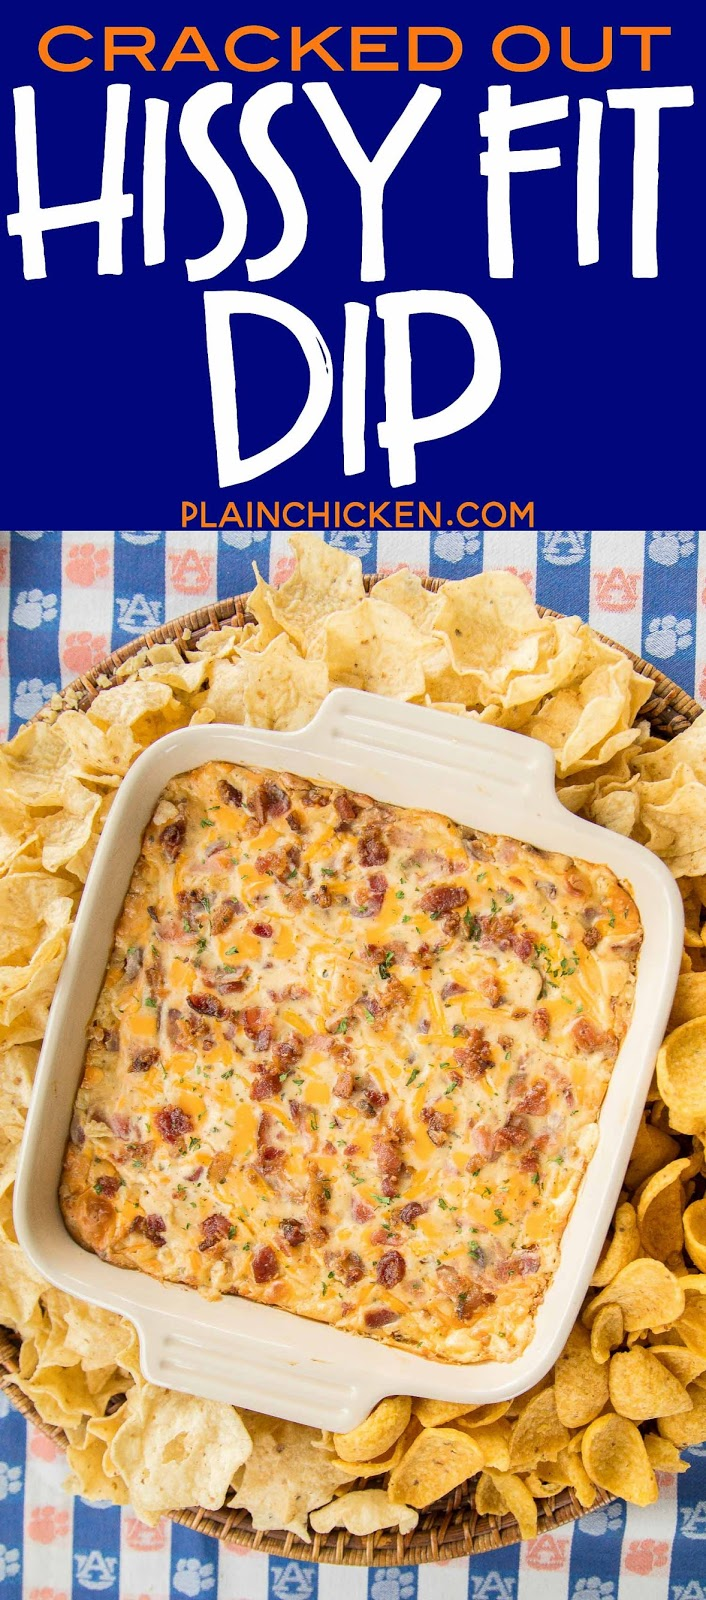 Cracked Out Hissy Fit Dip Recipe - cheddar, bacon, ranch, sour cream, Velveeta, Worcestershire sauce - SO good. You will definitely throw a hissy fit if you miss out on this dip! Crazy good! Can mix together and refrigerate a day before baking. Serve with chips and veggies! It is always gone in a flash!